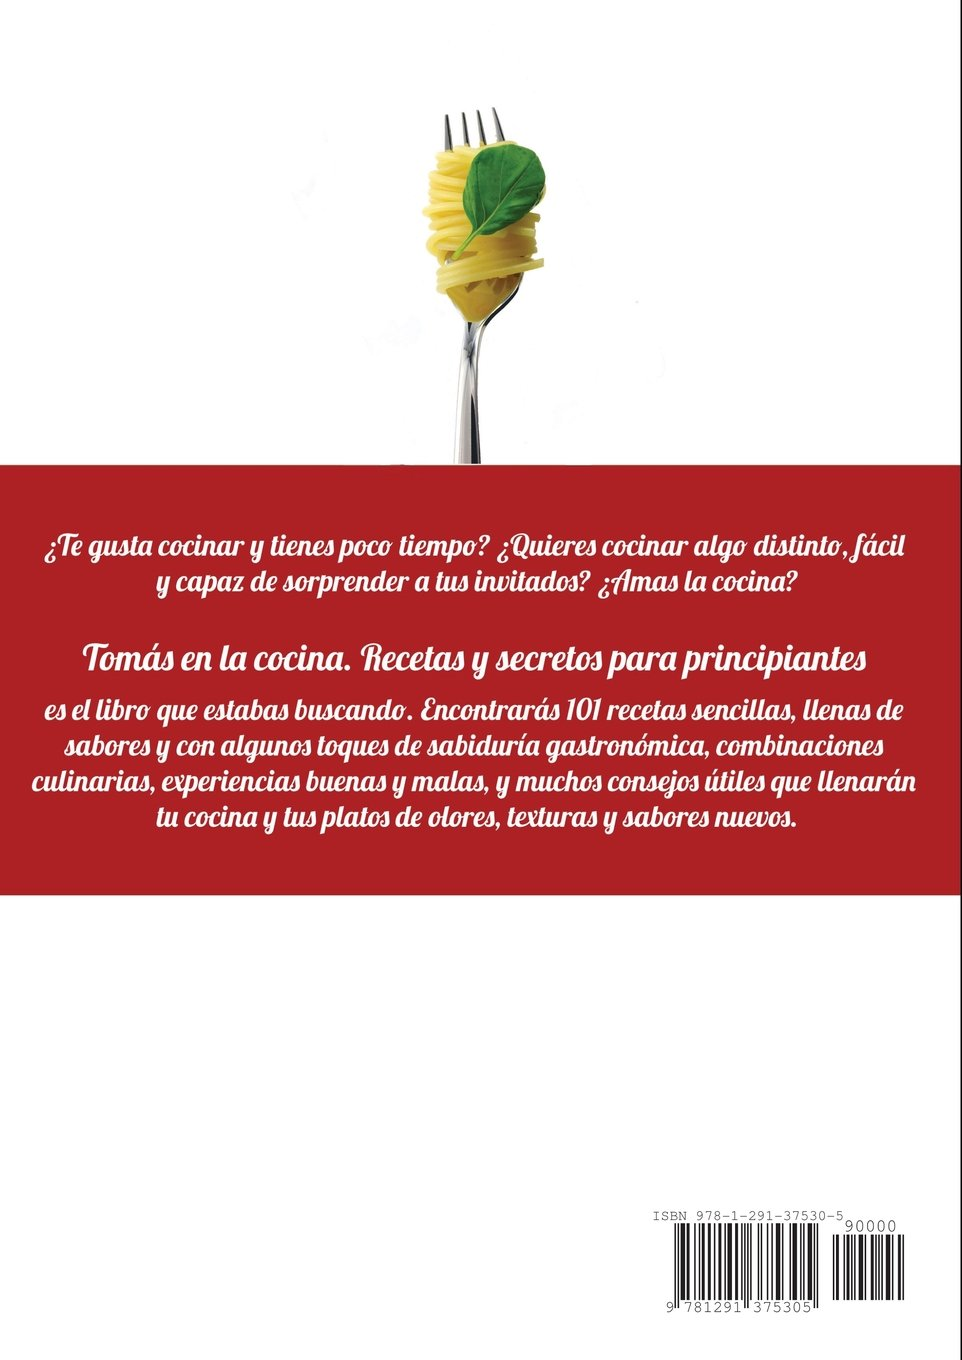 Recetas y secretos para principiantes (Spanish Edition): Tomás Loyola  Barberis: 9781291375305: Amazon.com: Books